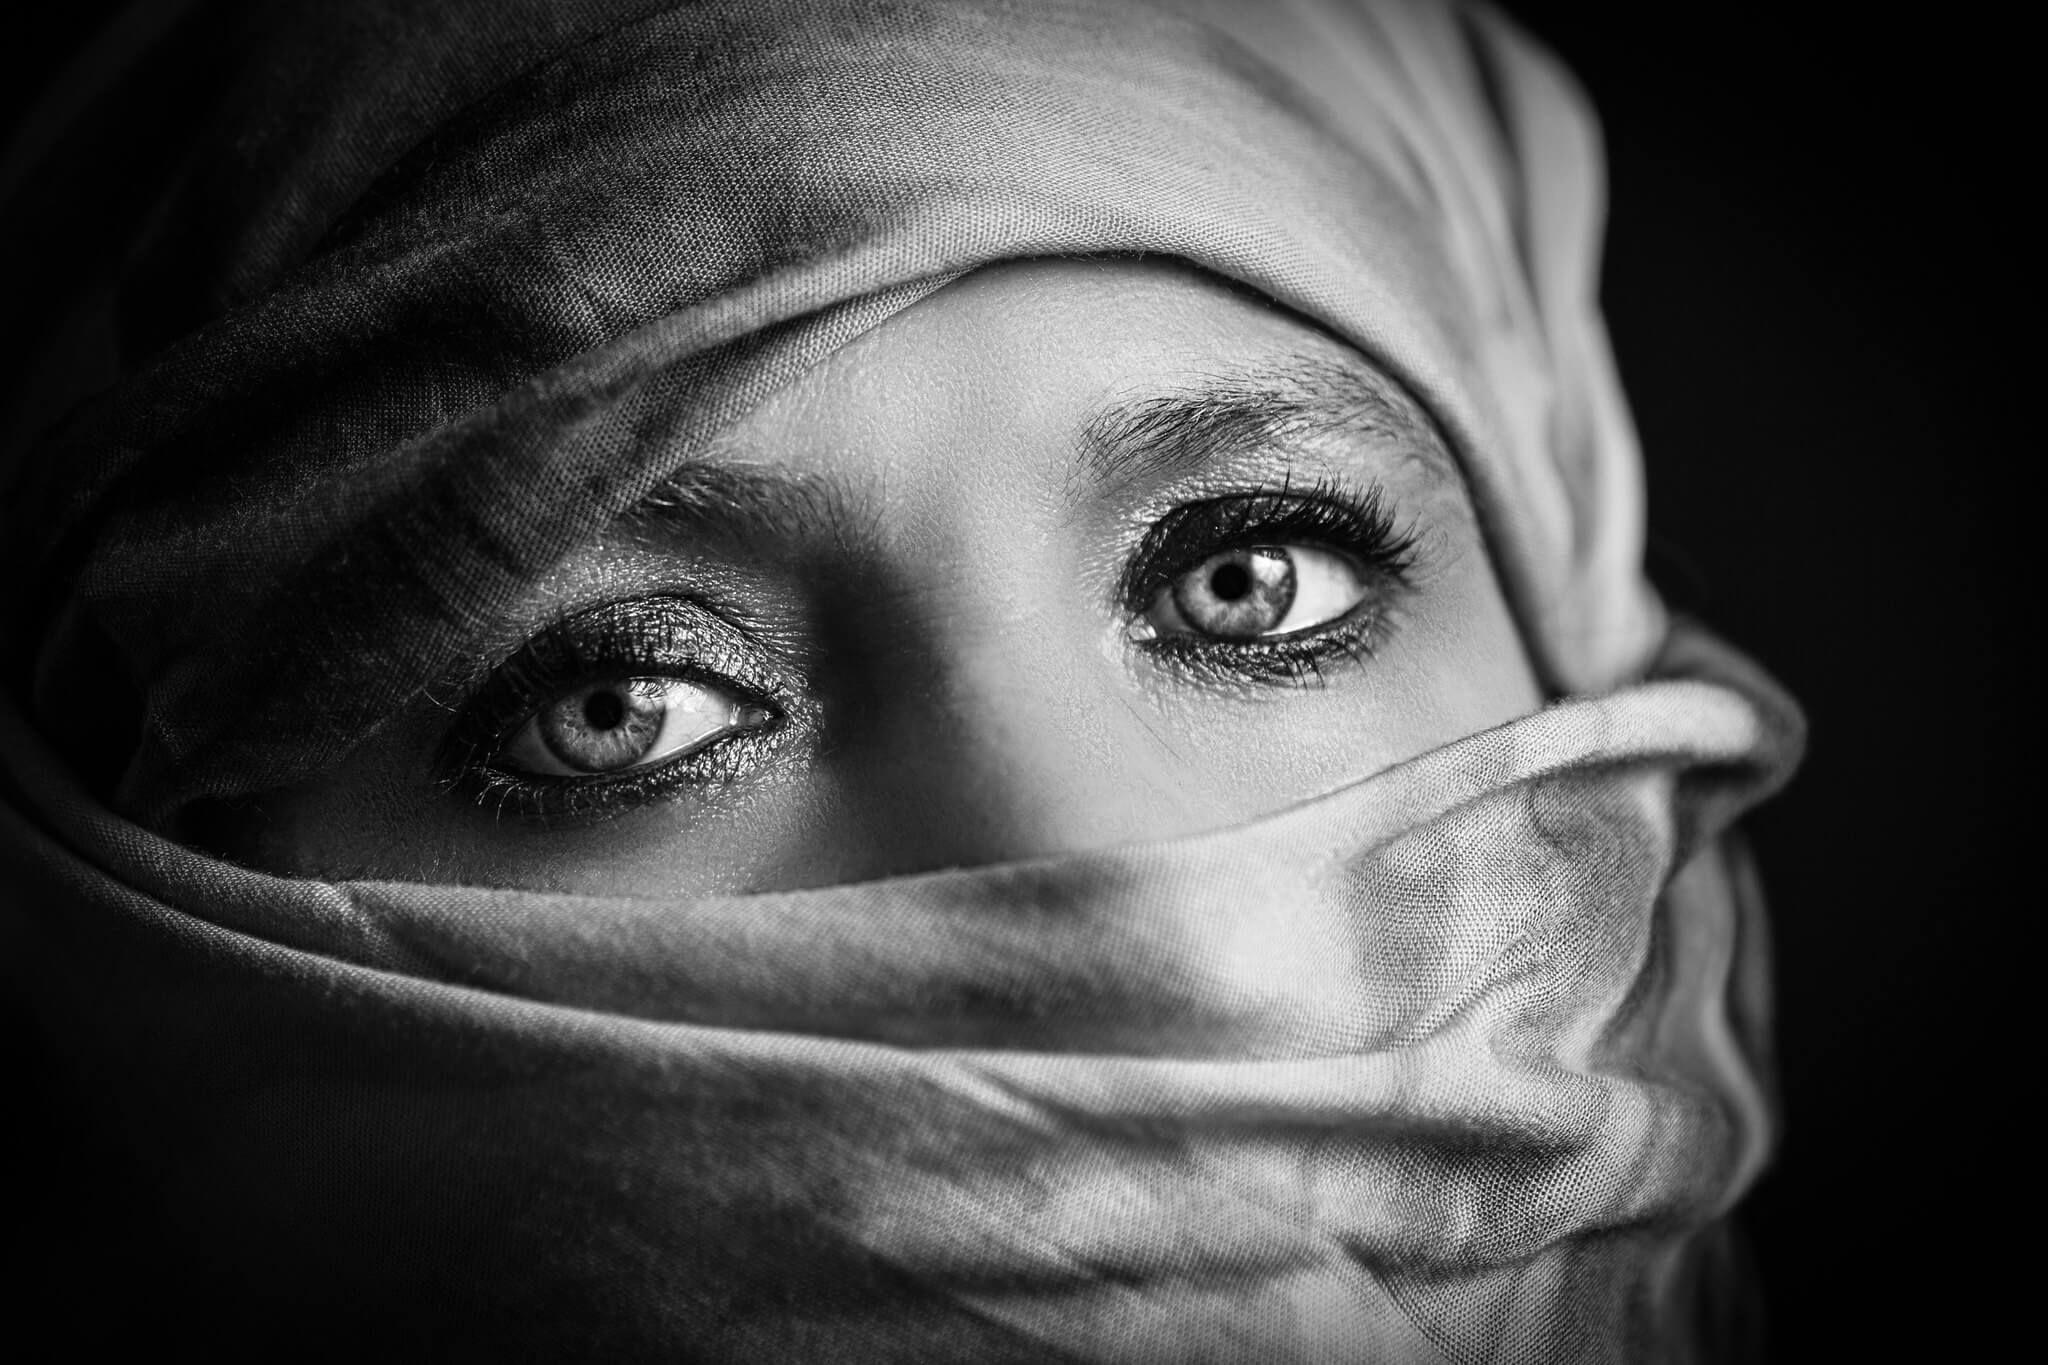 The Eyes Portrait Photography